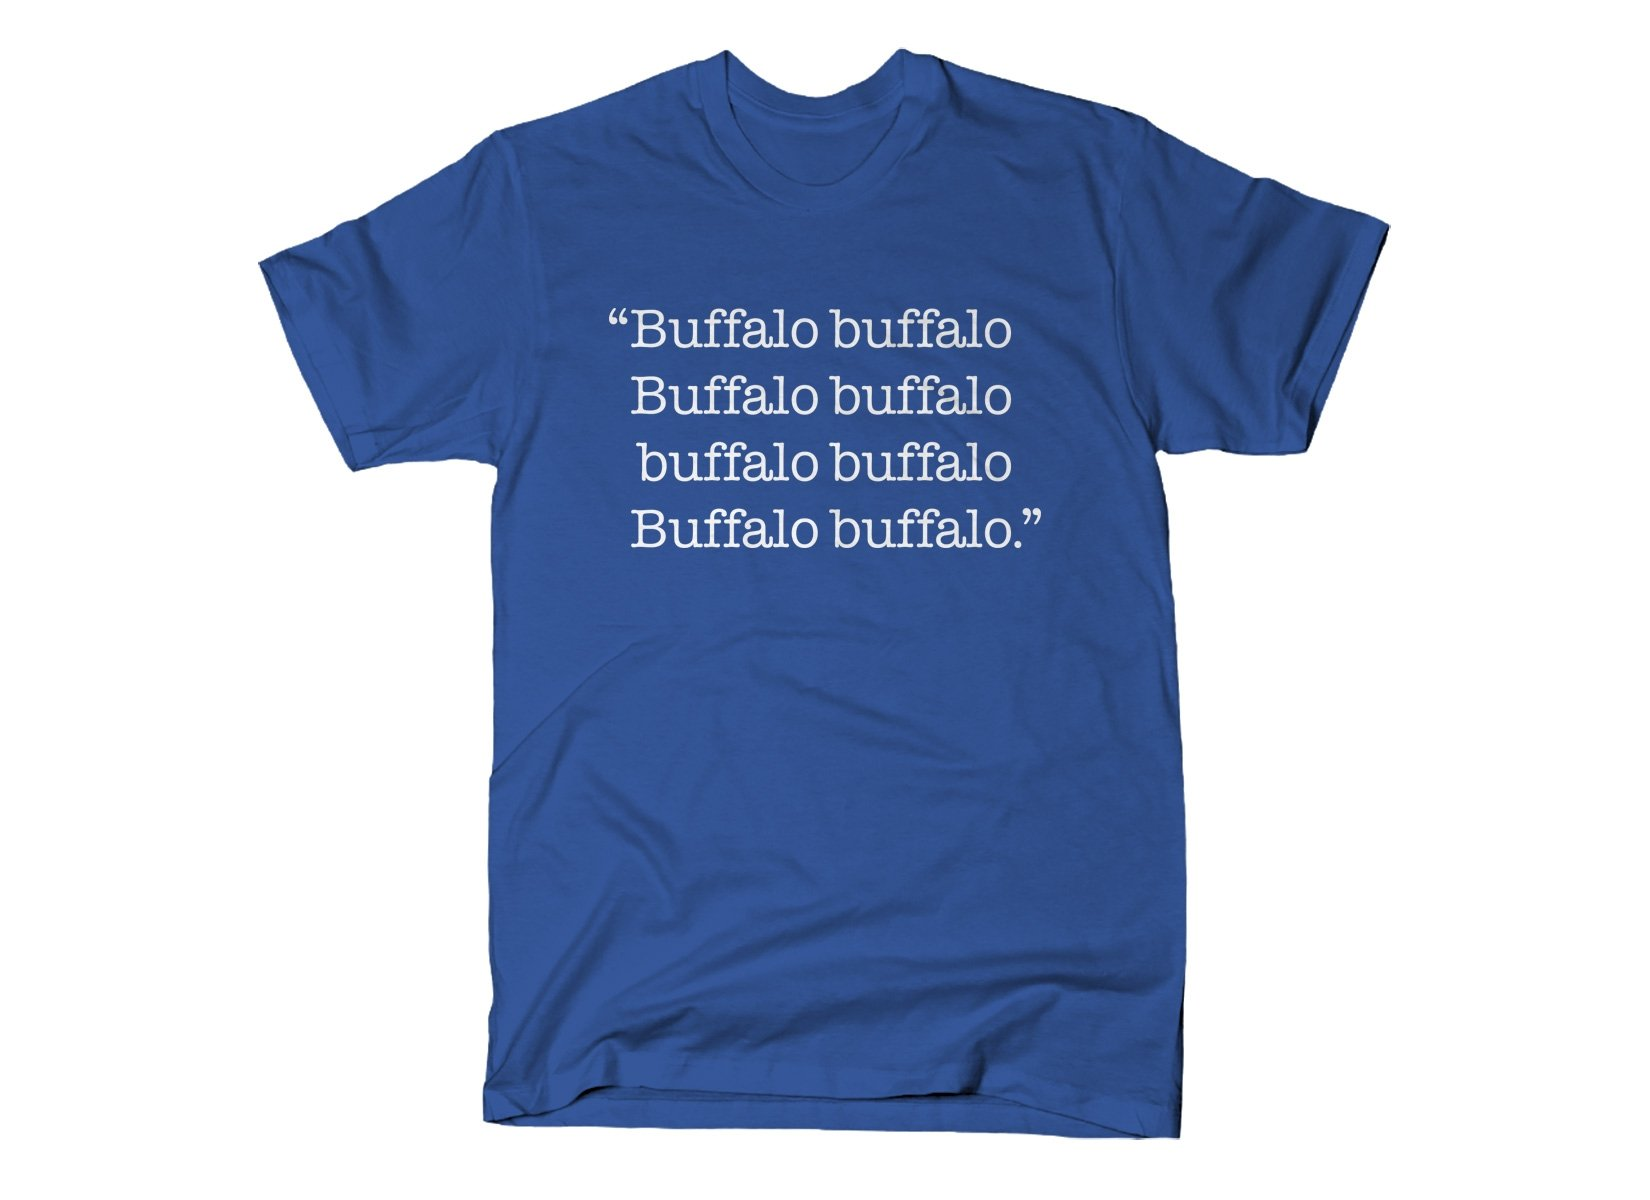 Buffalo buffalo on Mens T-Shirt